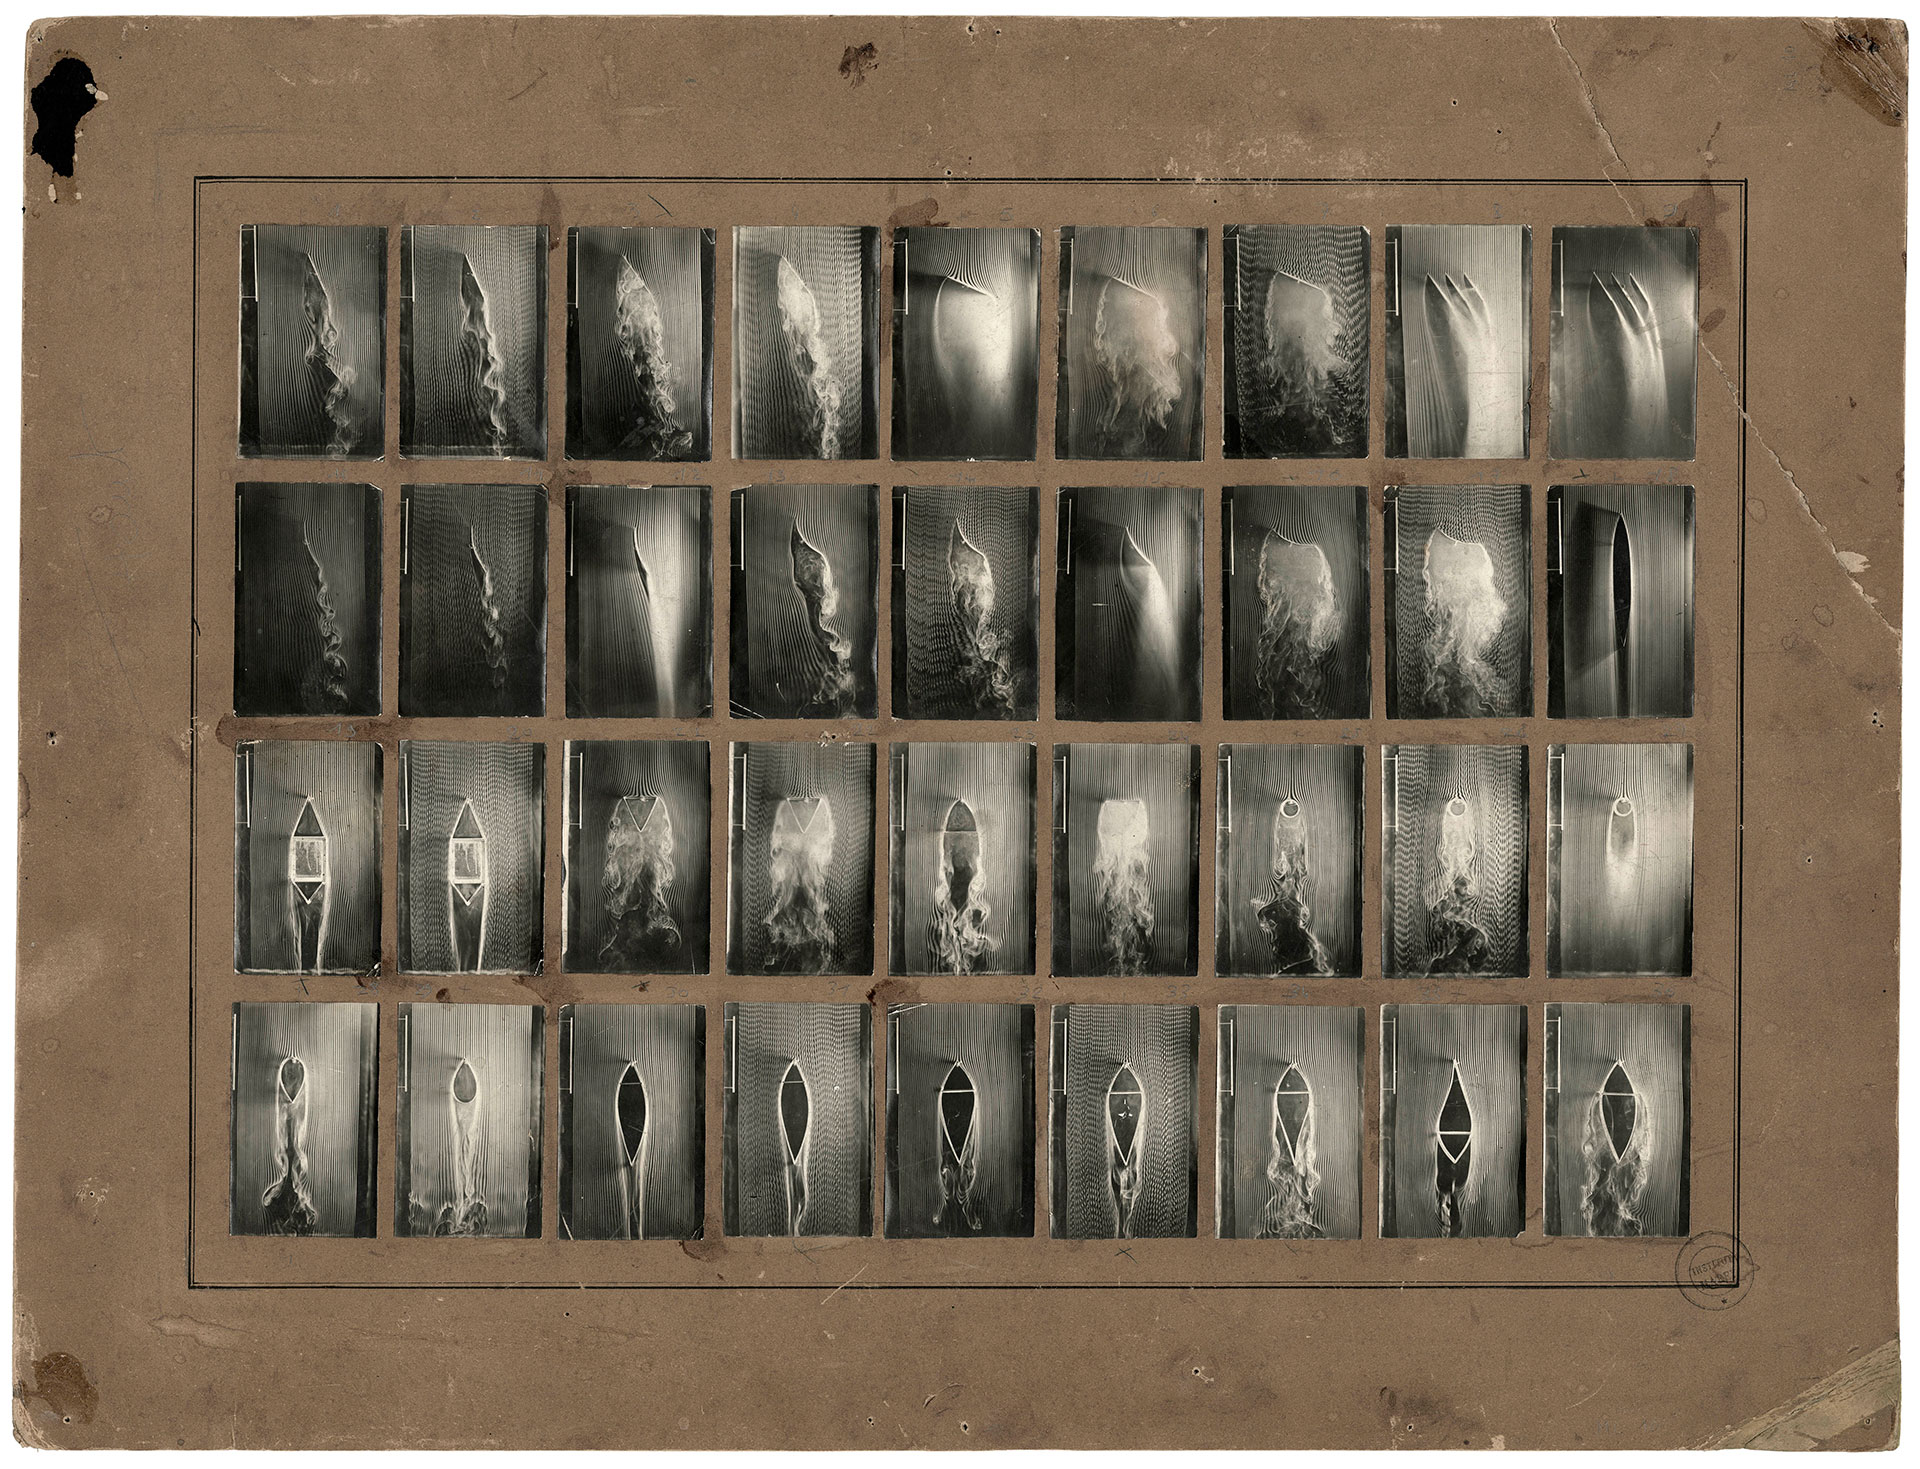 Detail of a contact sheet of original photographs showing smoke machines in operation, 1901. Photograph by Étienne-Jules Marey and Stéphane Dabrowski. No. ML 10, Collection of the Cinémathèque française, Paris